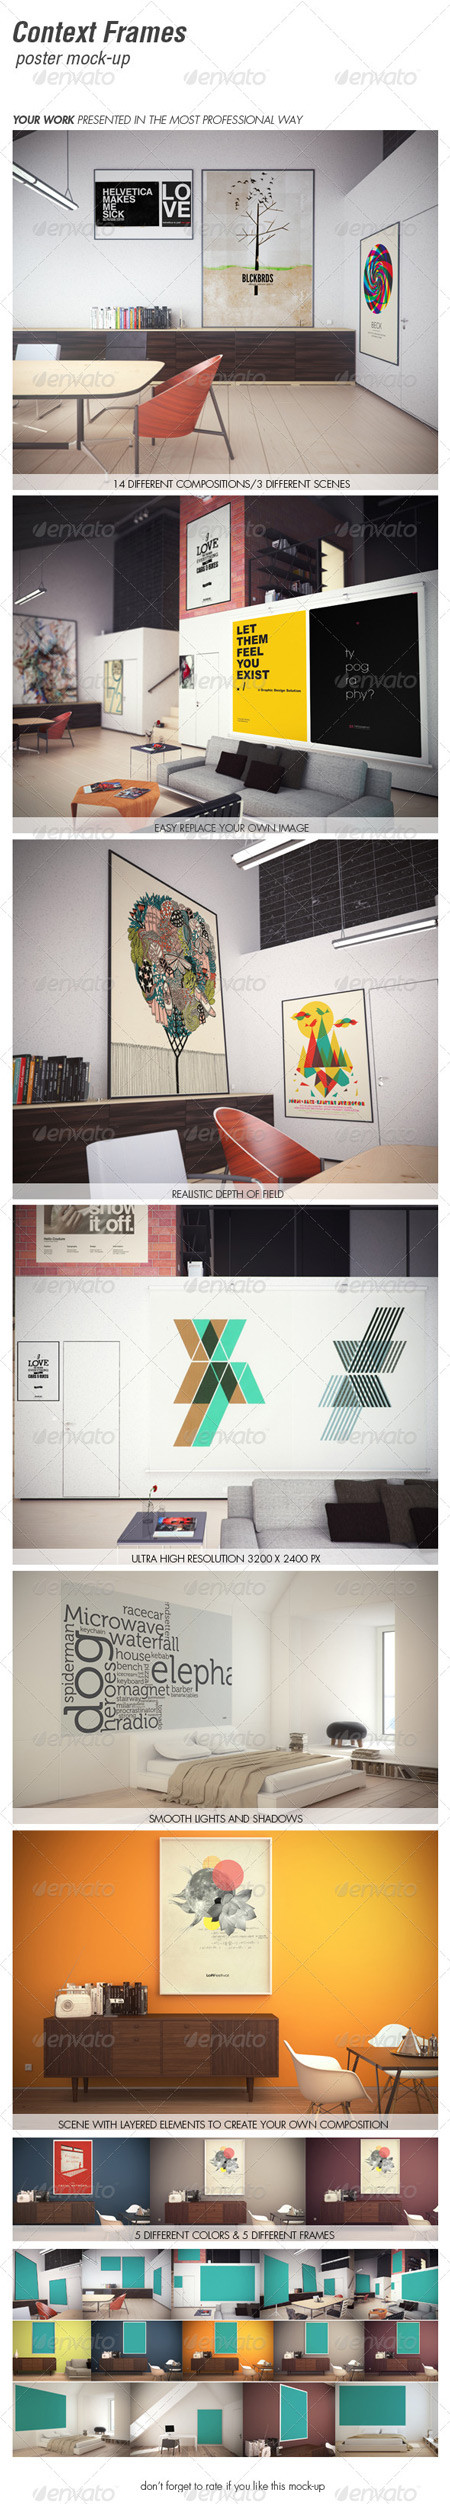 GraphicRiver CONTEXT FRAMES poster mock-up vol. 2